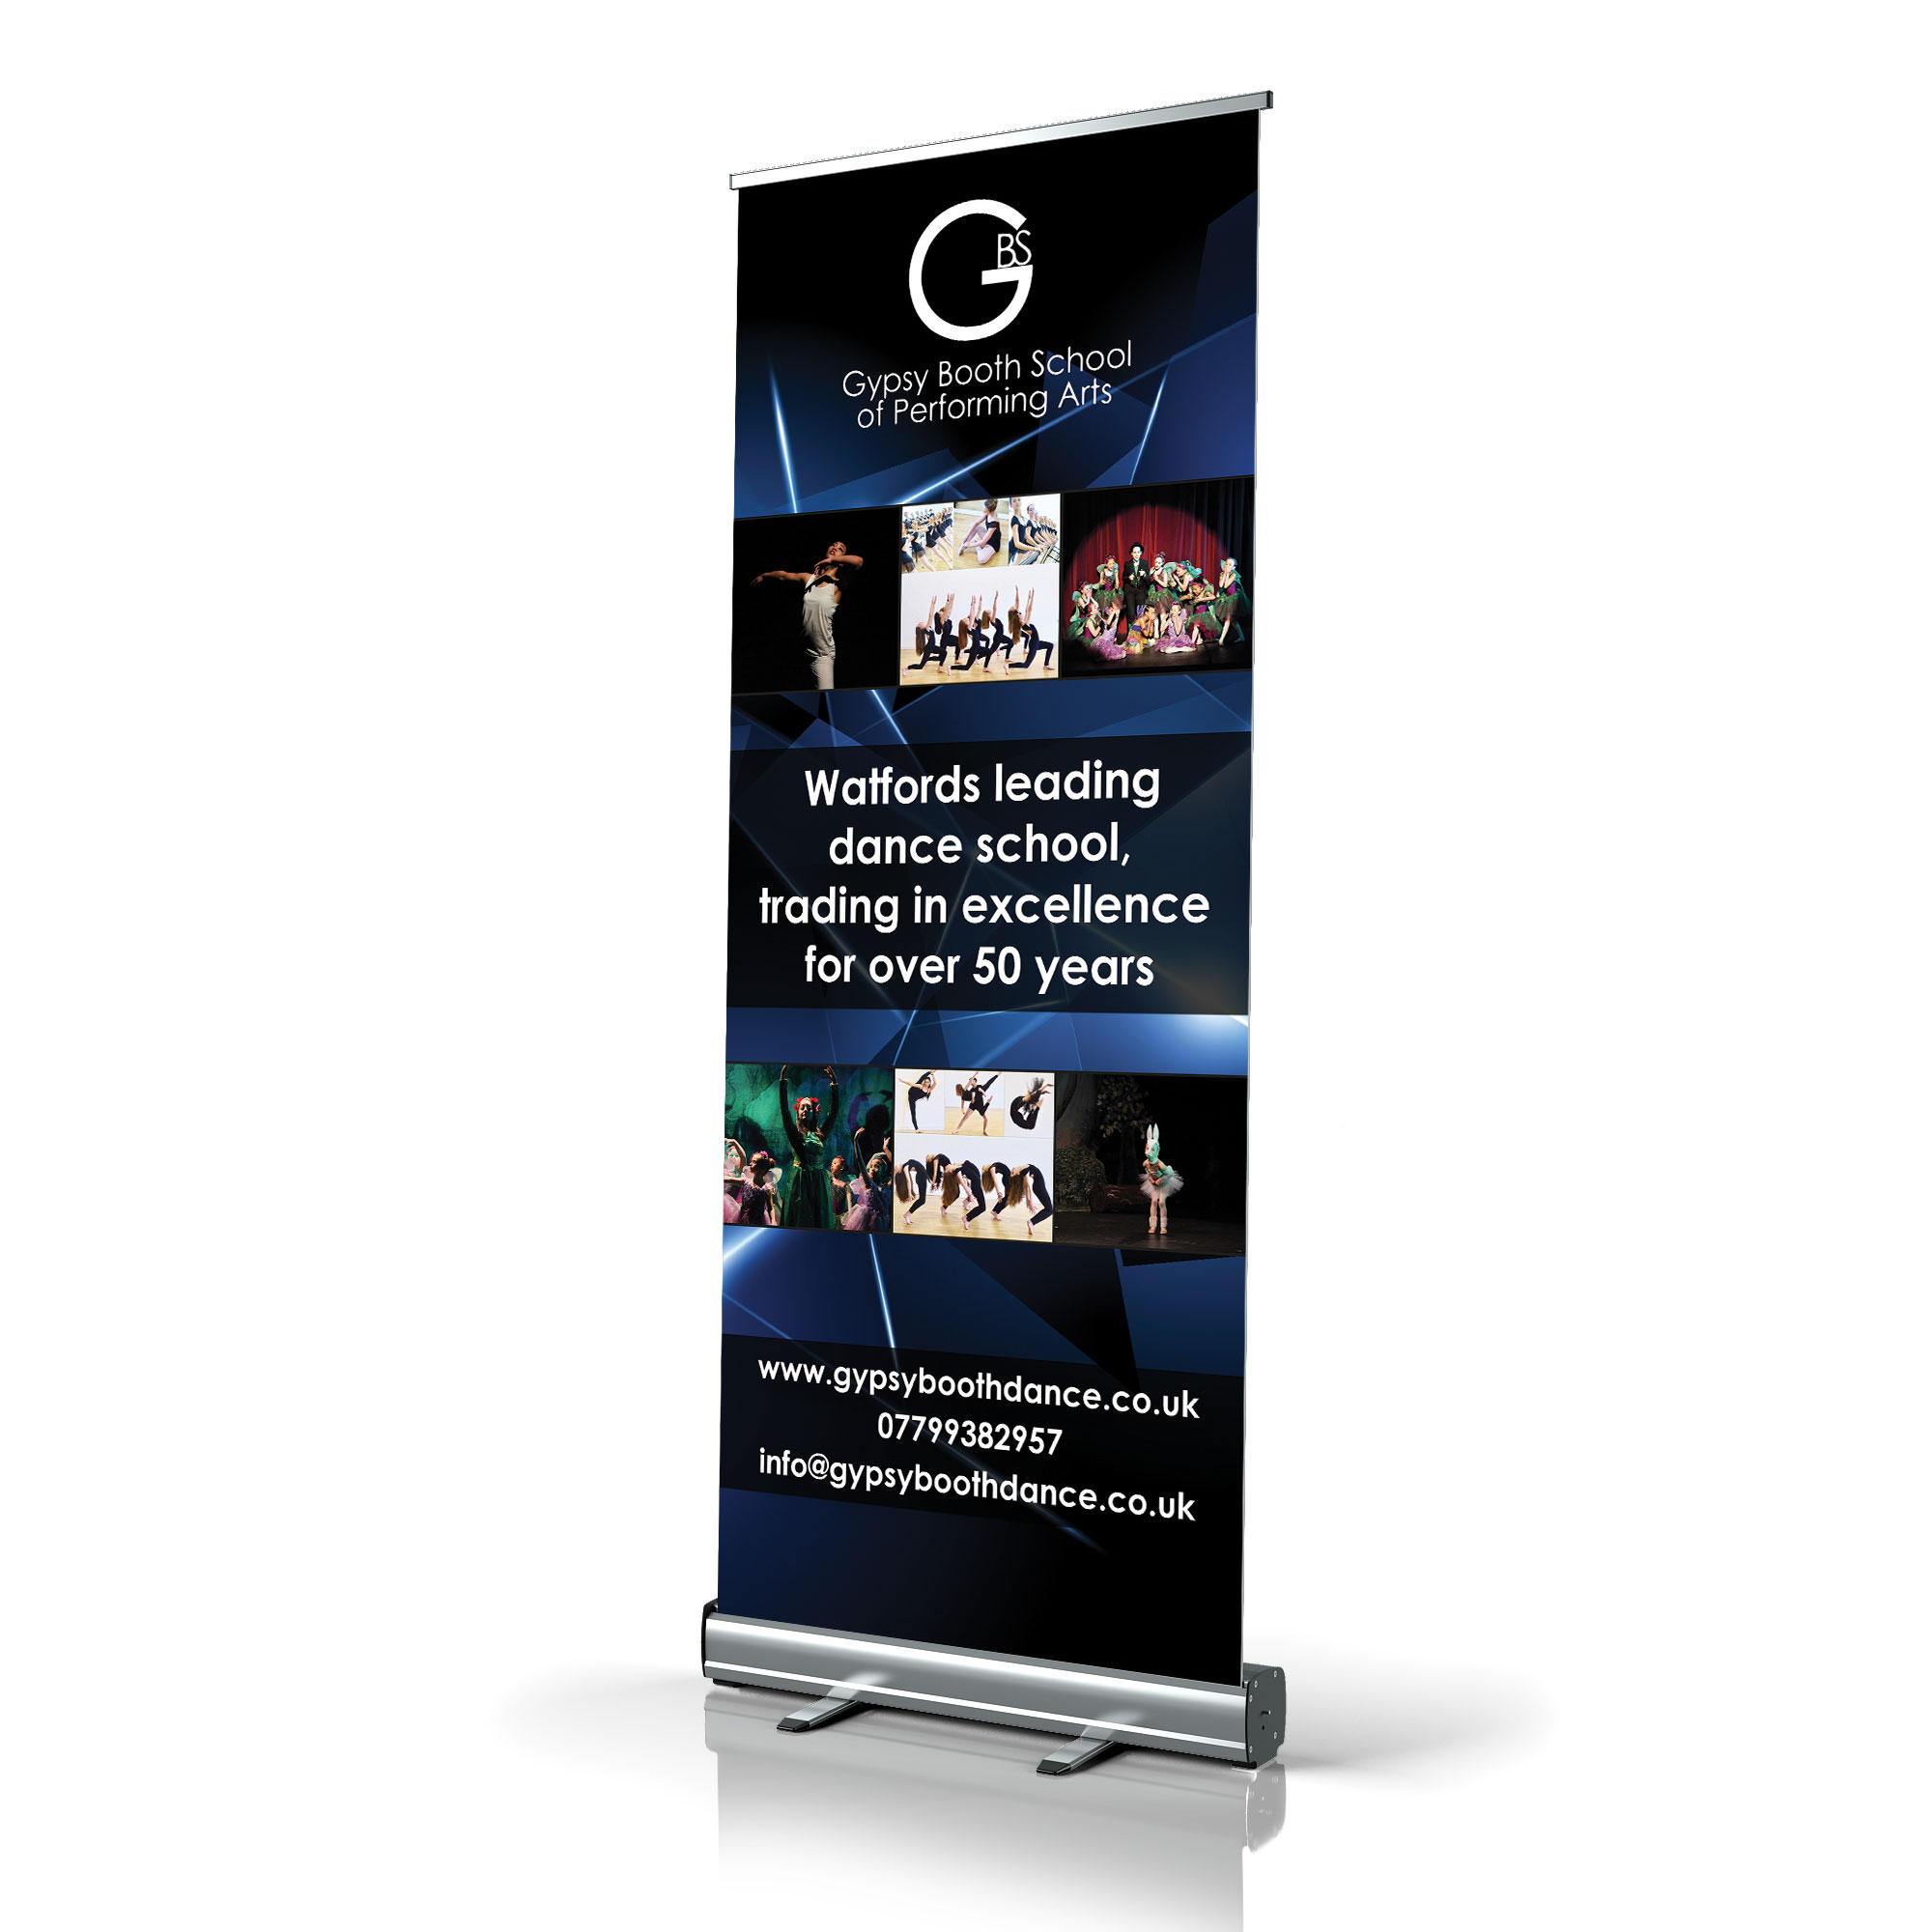 Gypsy Booth Roller Banner Design and Print